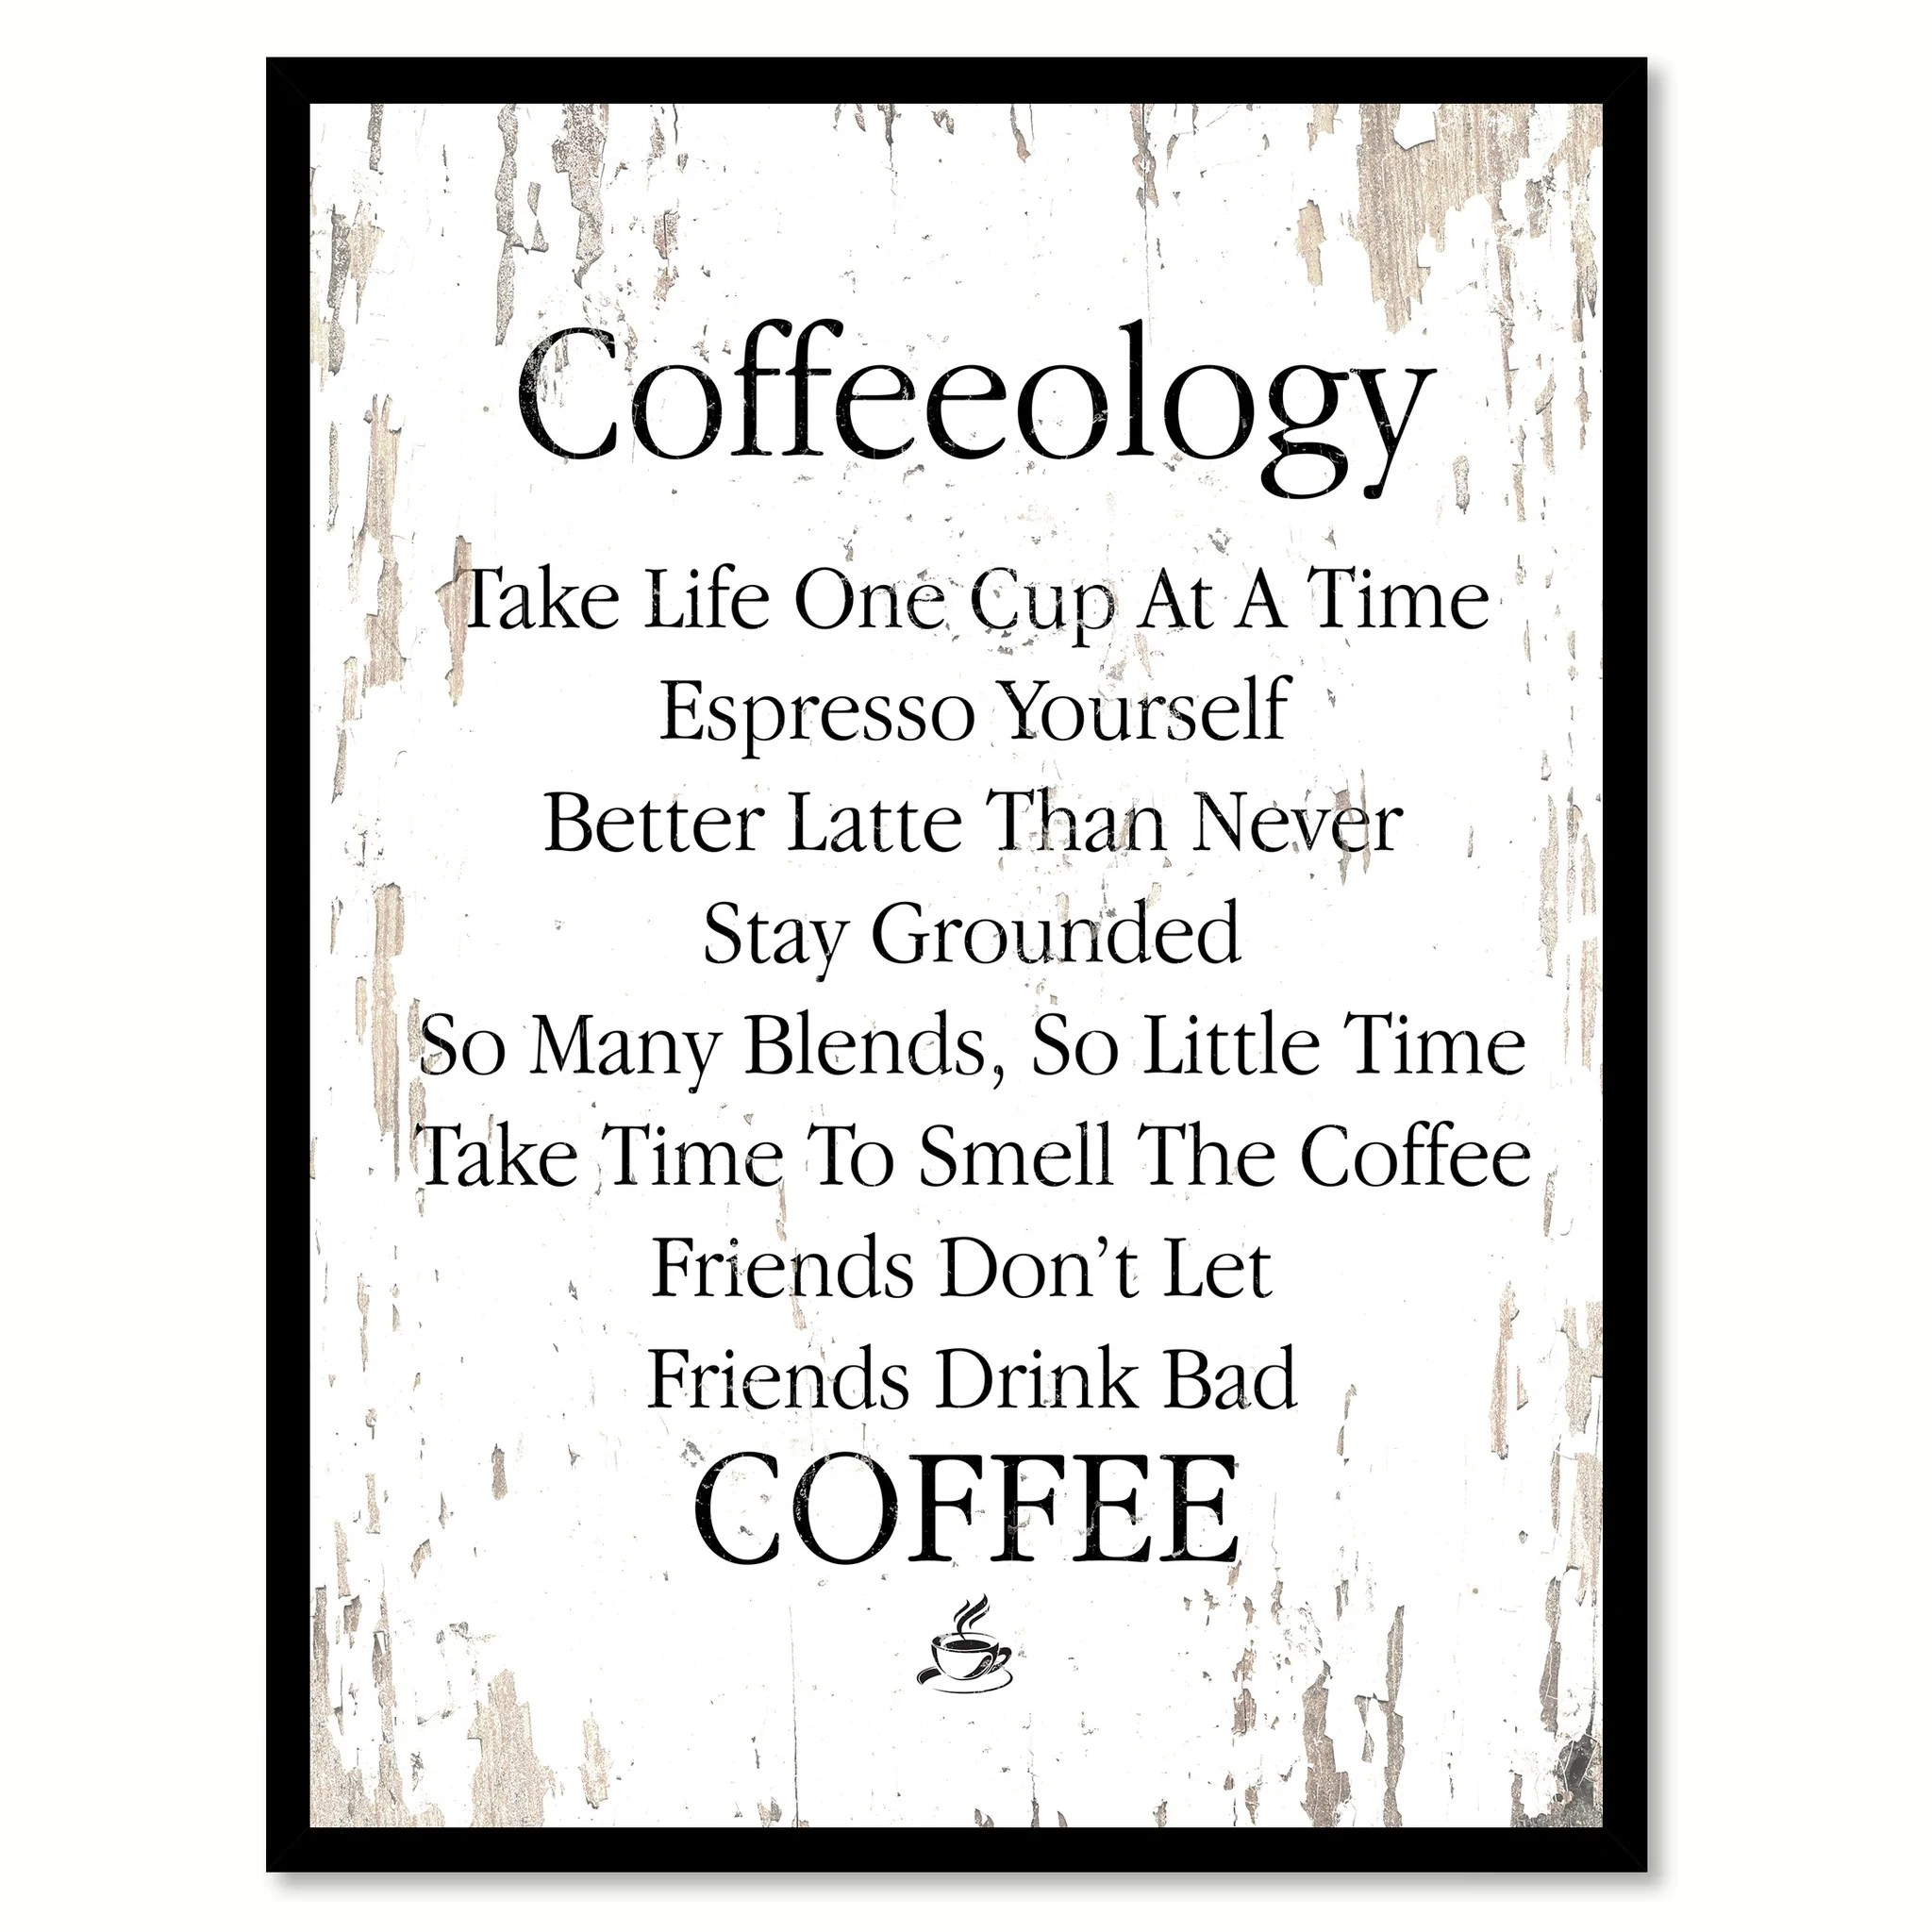 Coffee Latte Art Quotes Coffeeology Espresso Yourself So Many Blends Take Life One